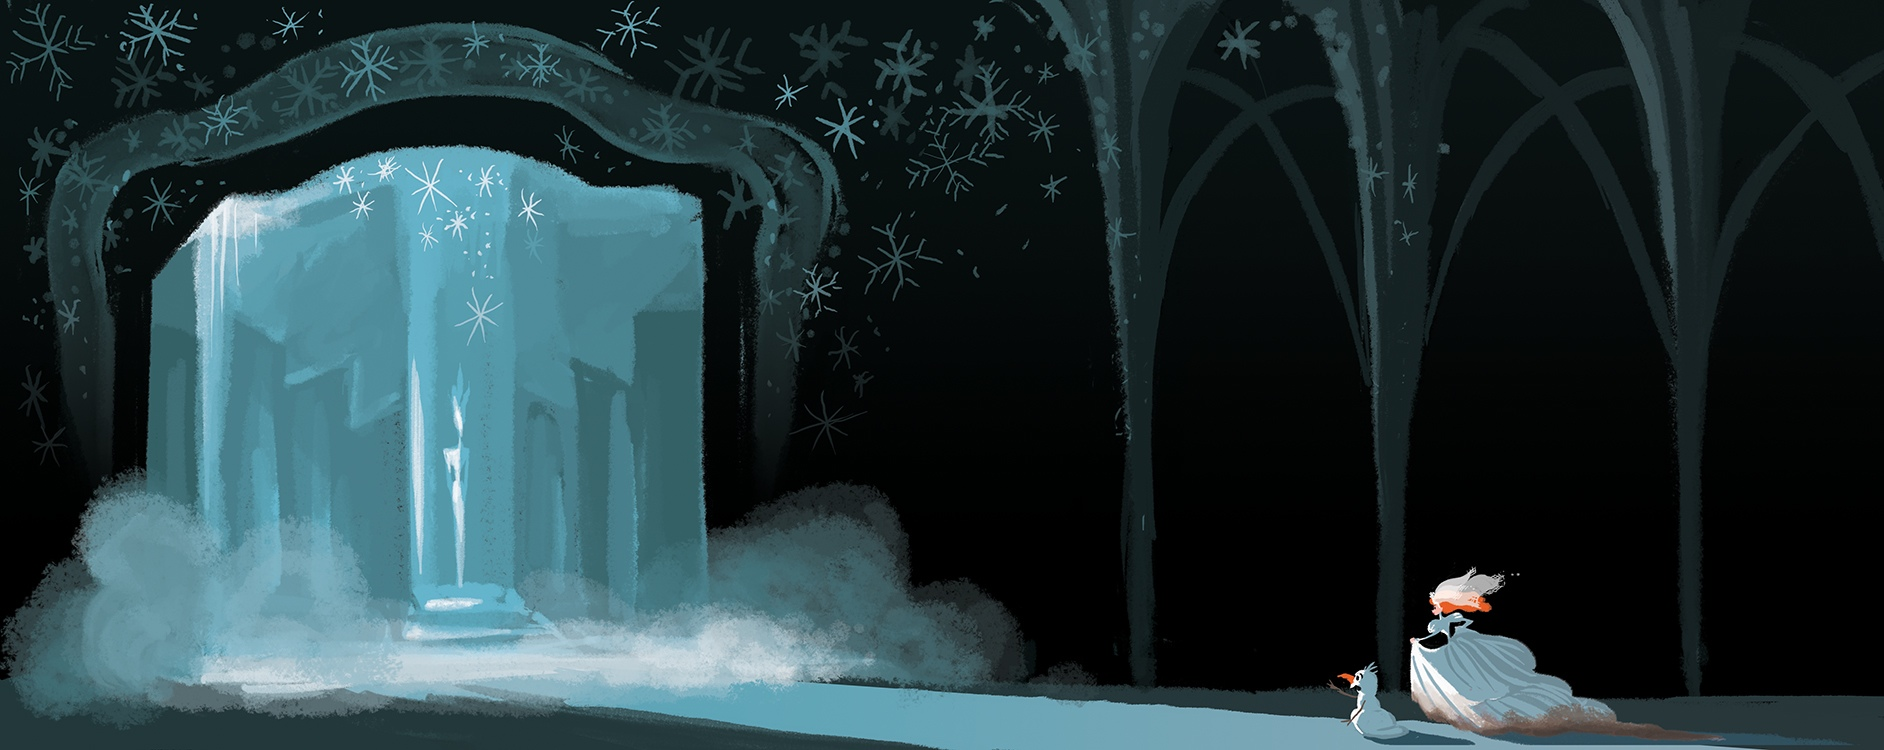 ANNA COMING TO RESCUE THE SNOW QUEEN // VISUAL DEVELOPMENT FOR FROZEN